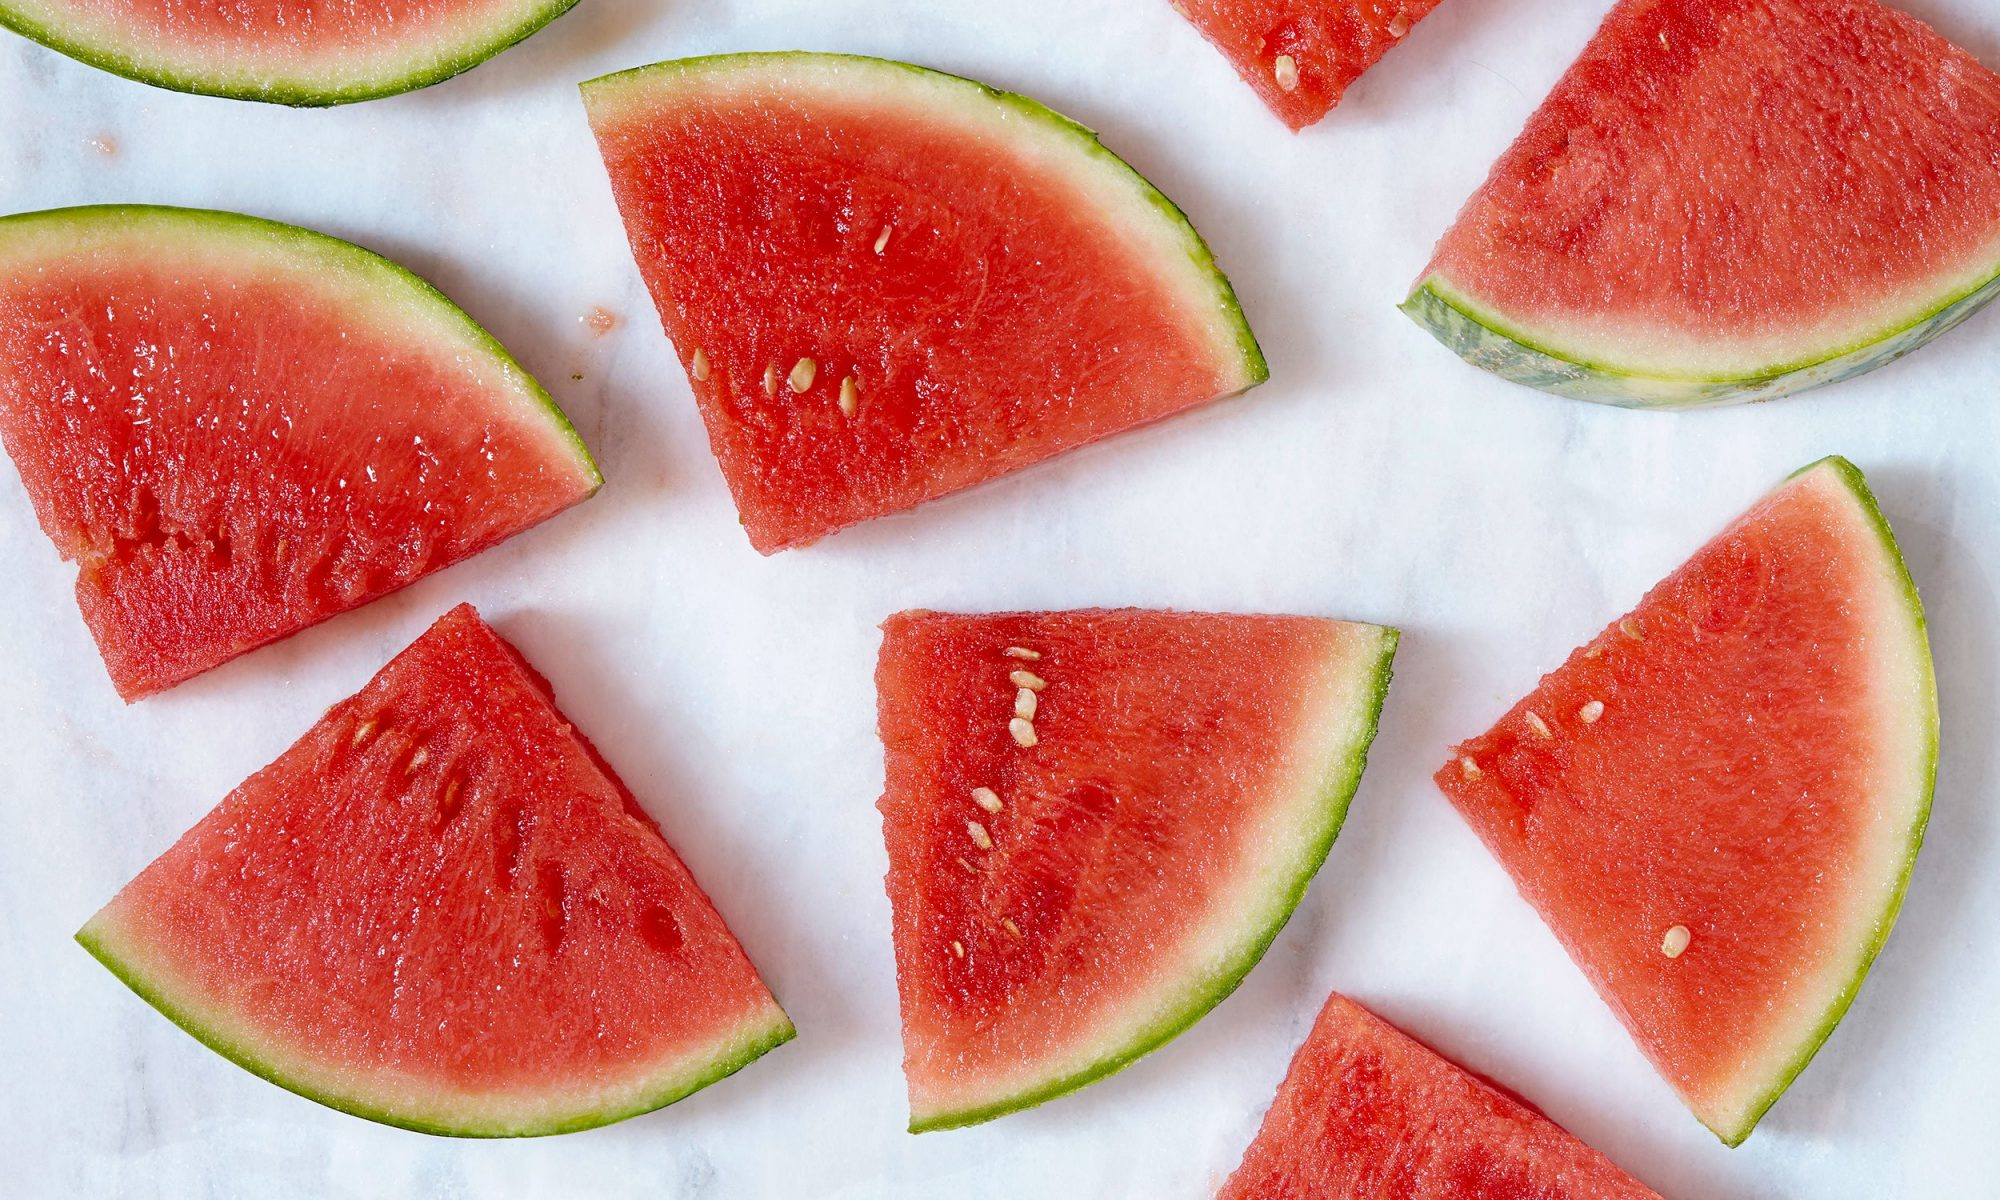 The Best Way to Cut a Watermelon No Matter How You Eat It